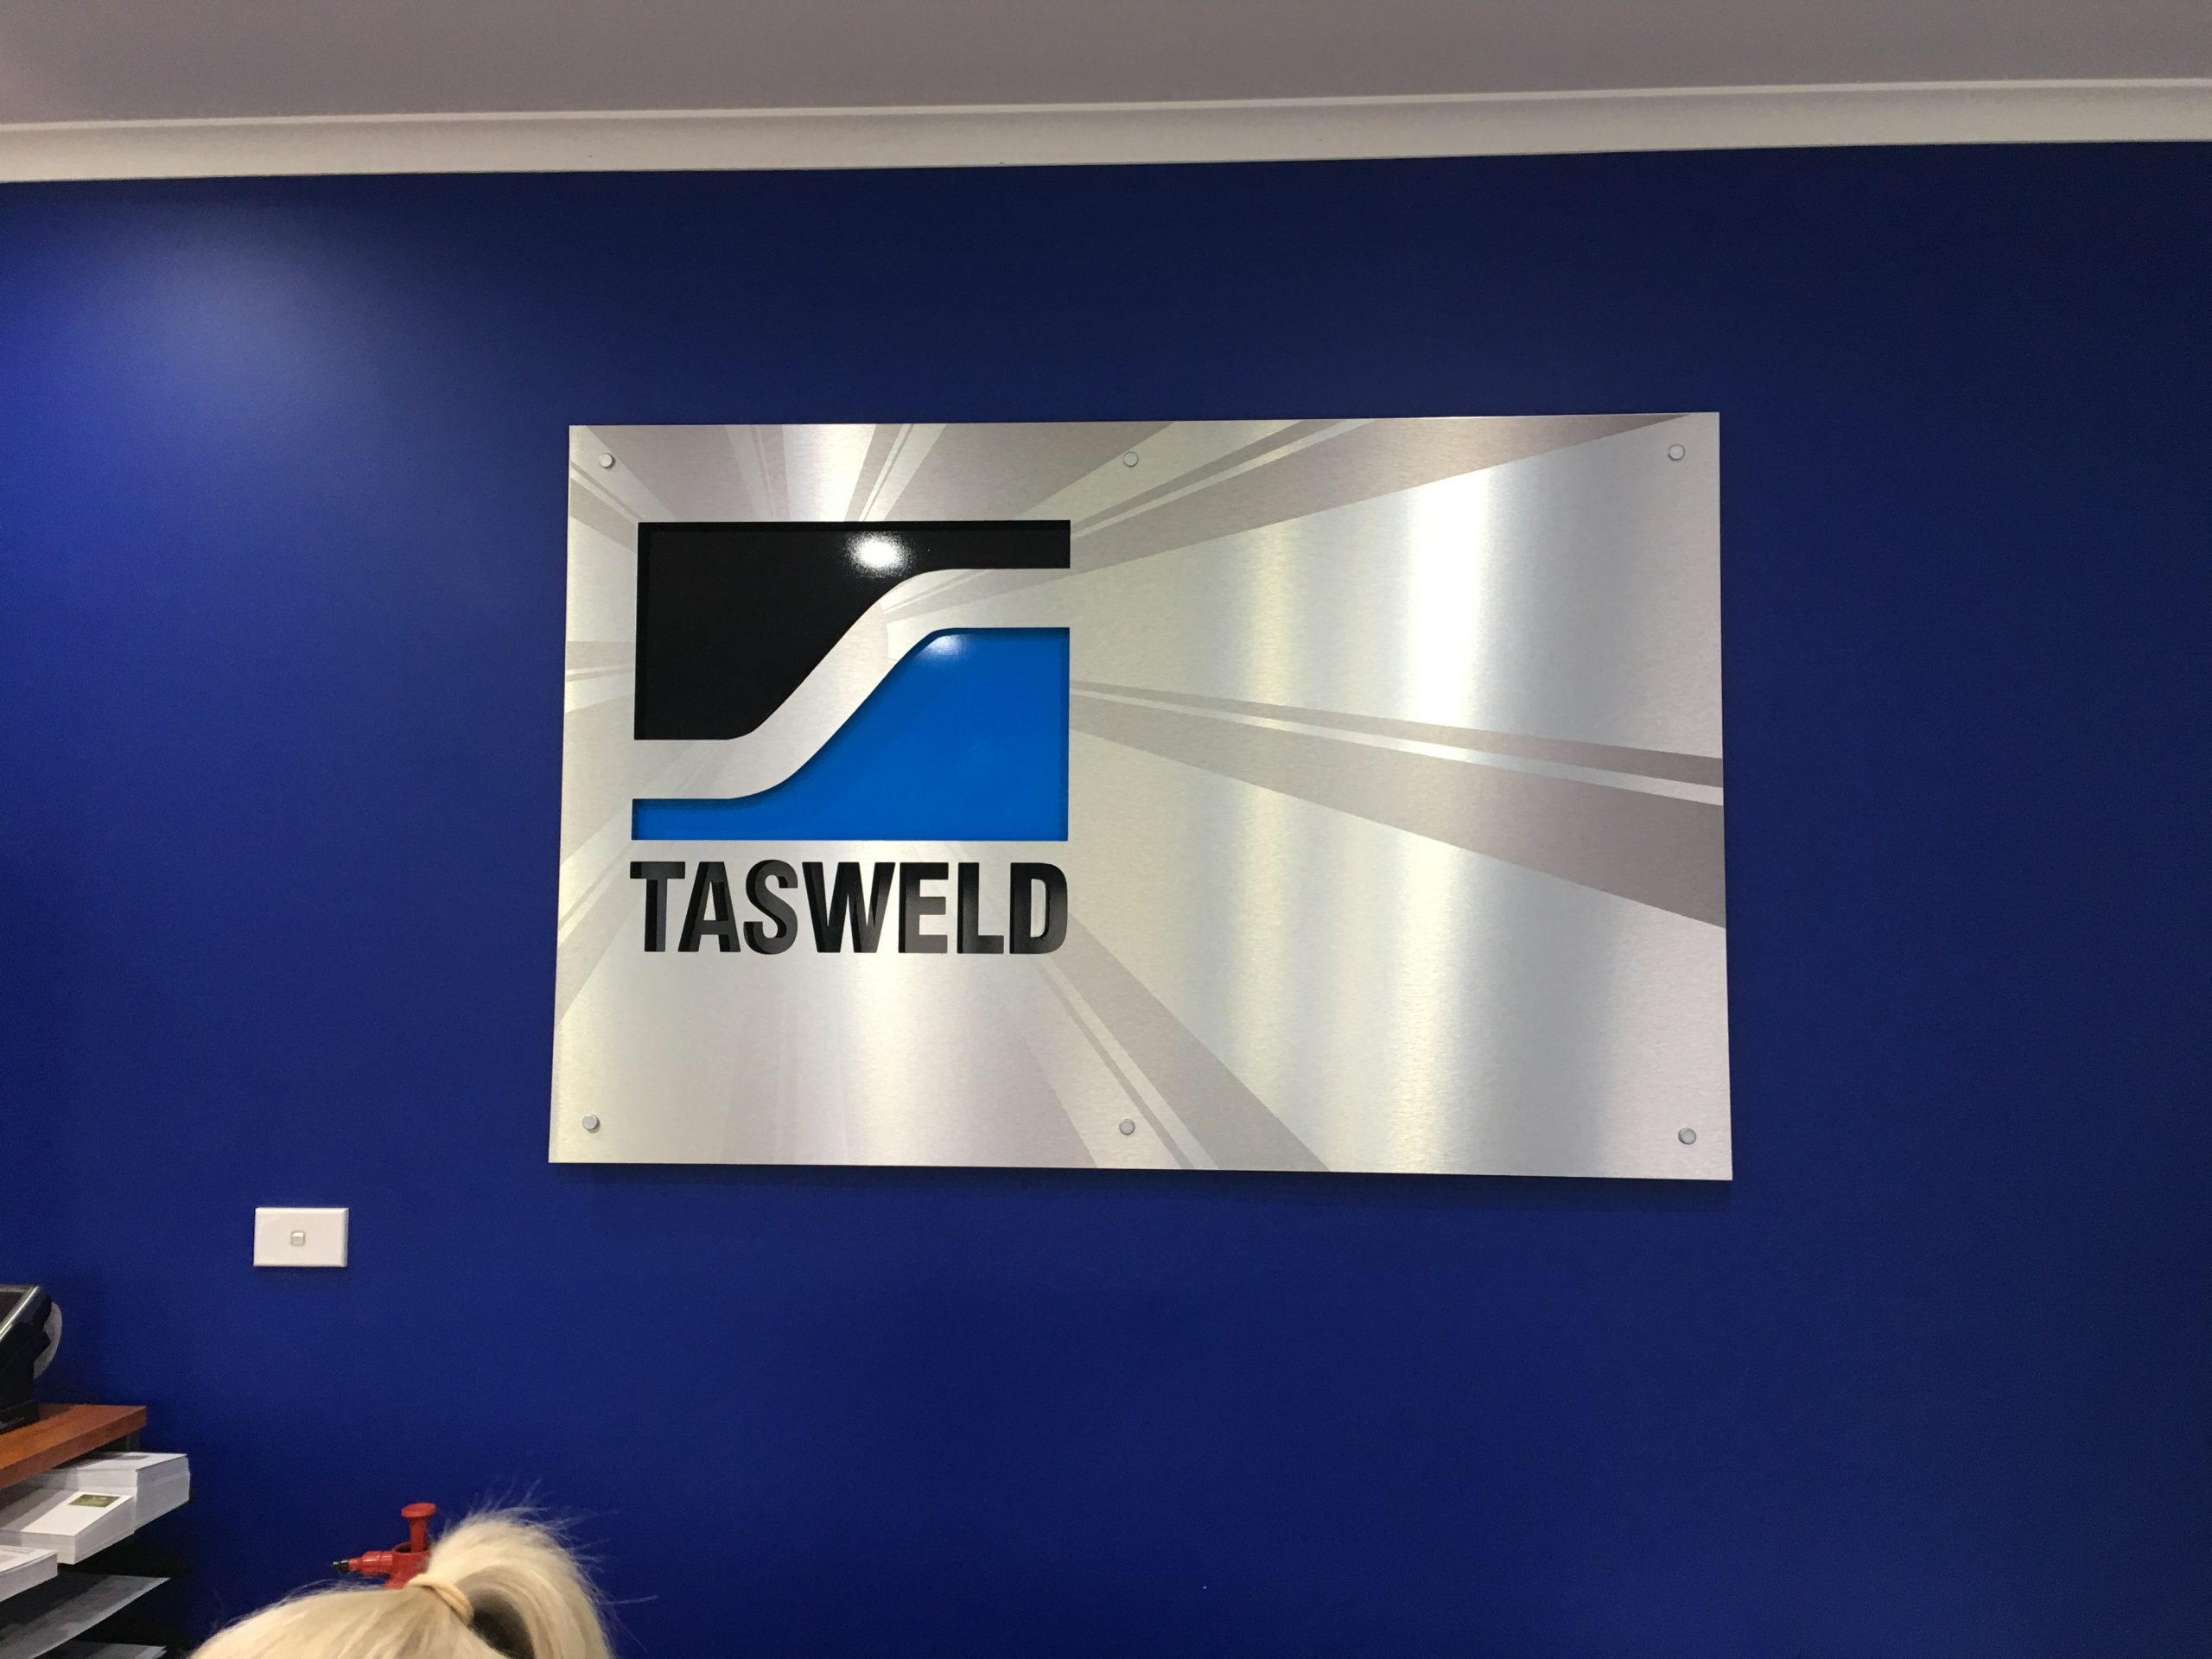 Tasweld Engineering